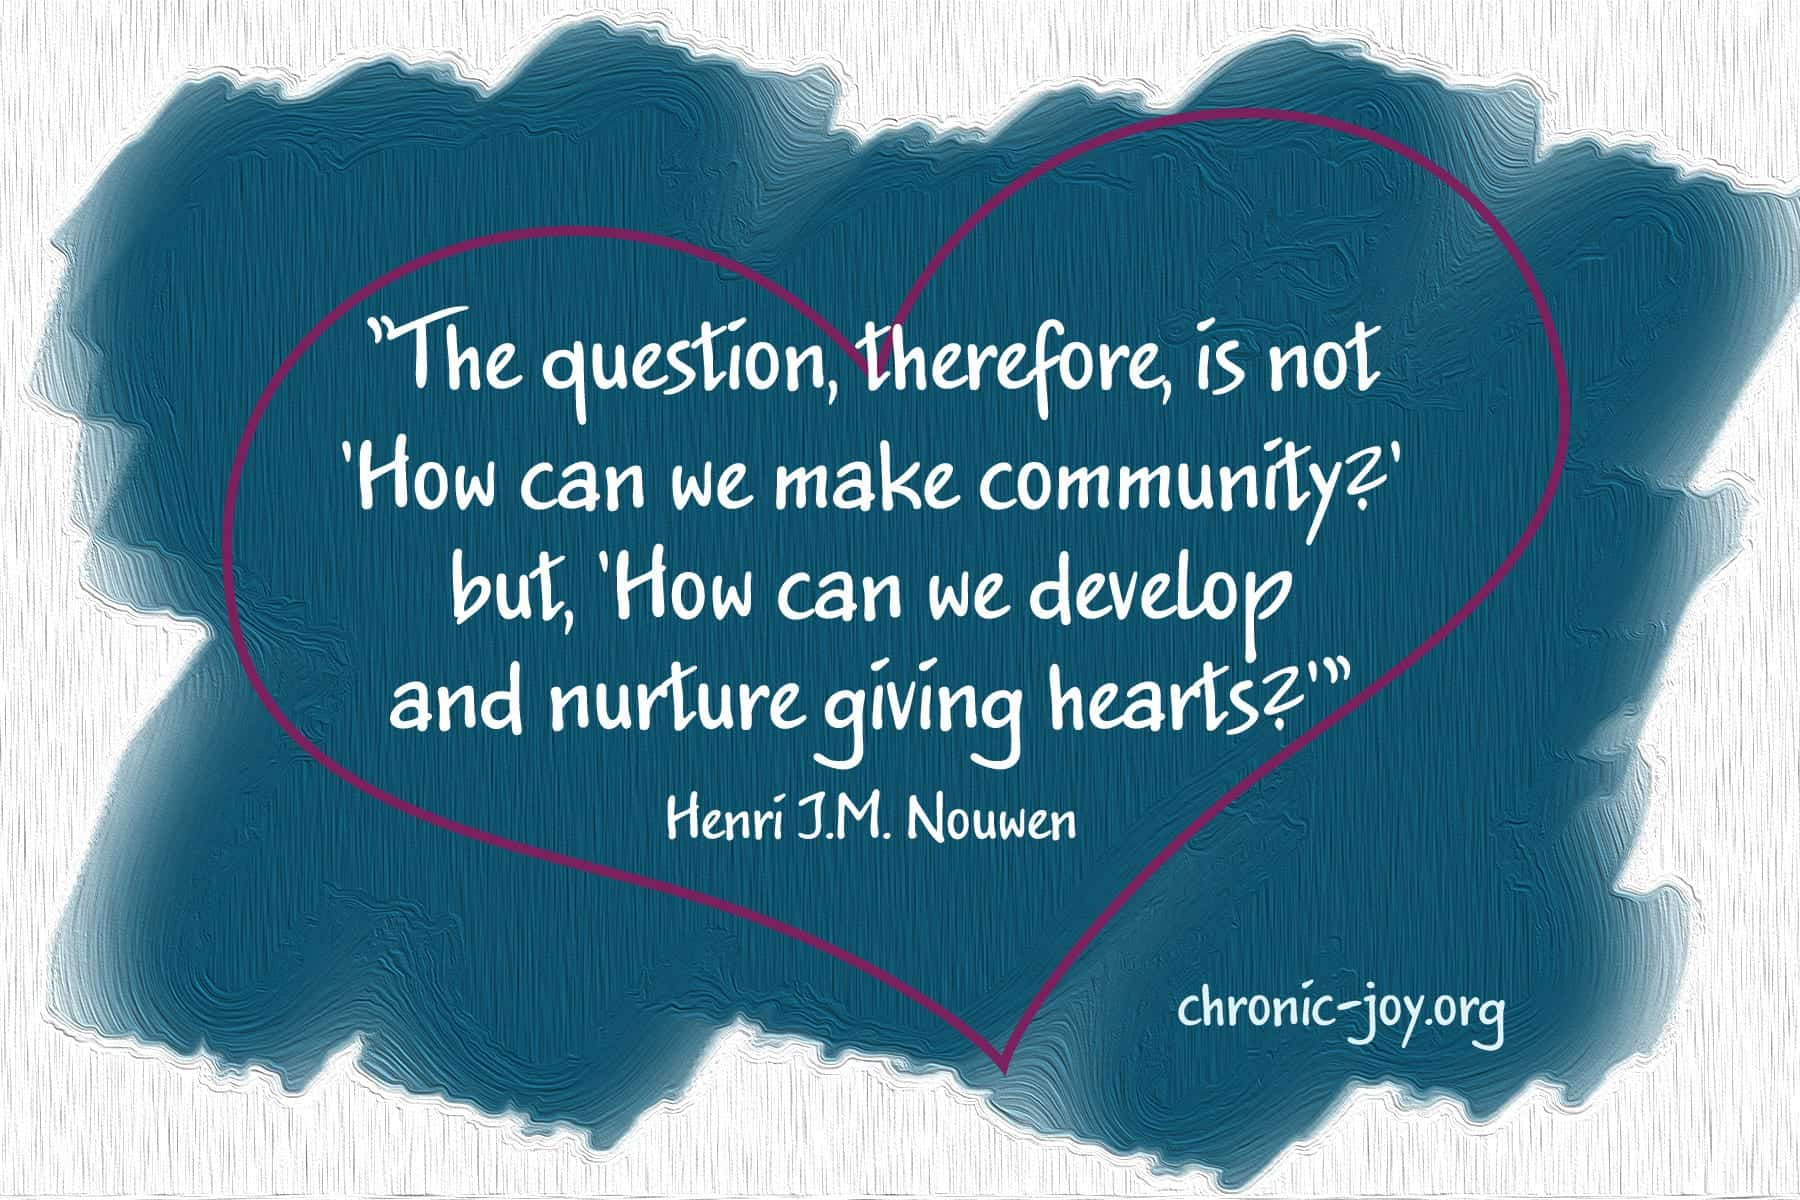 """The question, therefore, is not 'How can we make community?' but, 'How can we develop and nurture giving hearts?'"" Henri J.M. Nouwen"